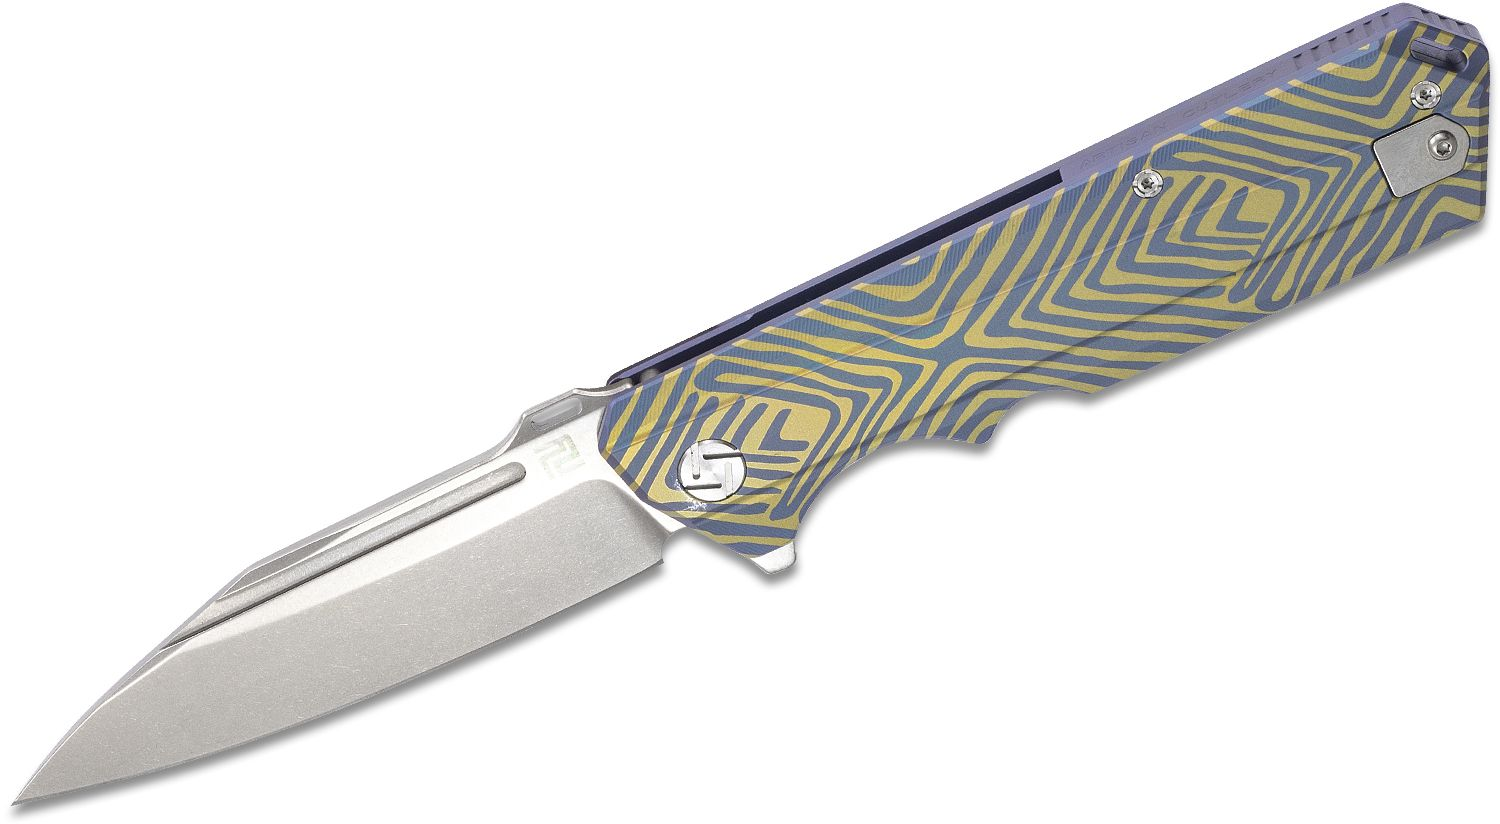 ArtisanCutlery Littoral Flipper Knife 3.74 inch S35VN Stonewashed Drop Point, Blue and Gold Anodized Titanium Handles